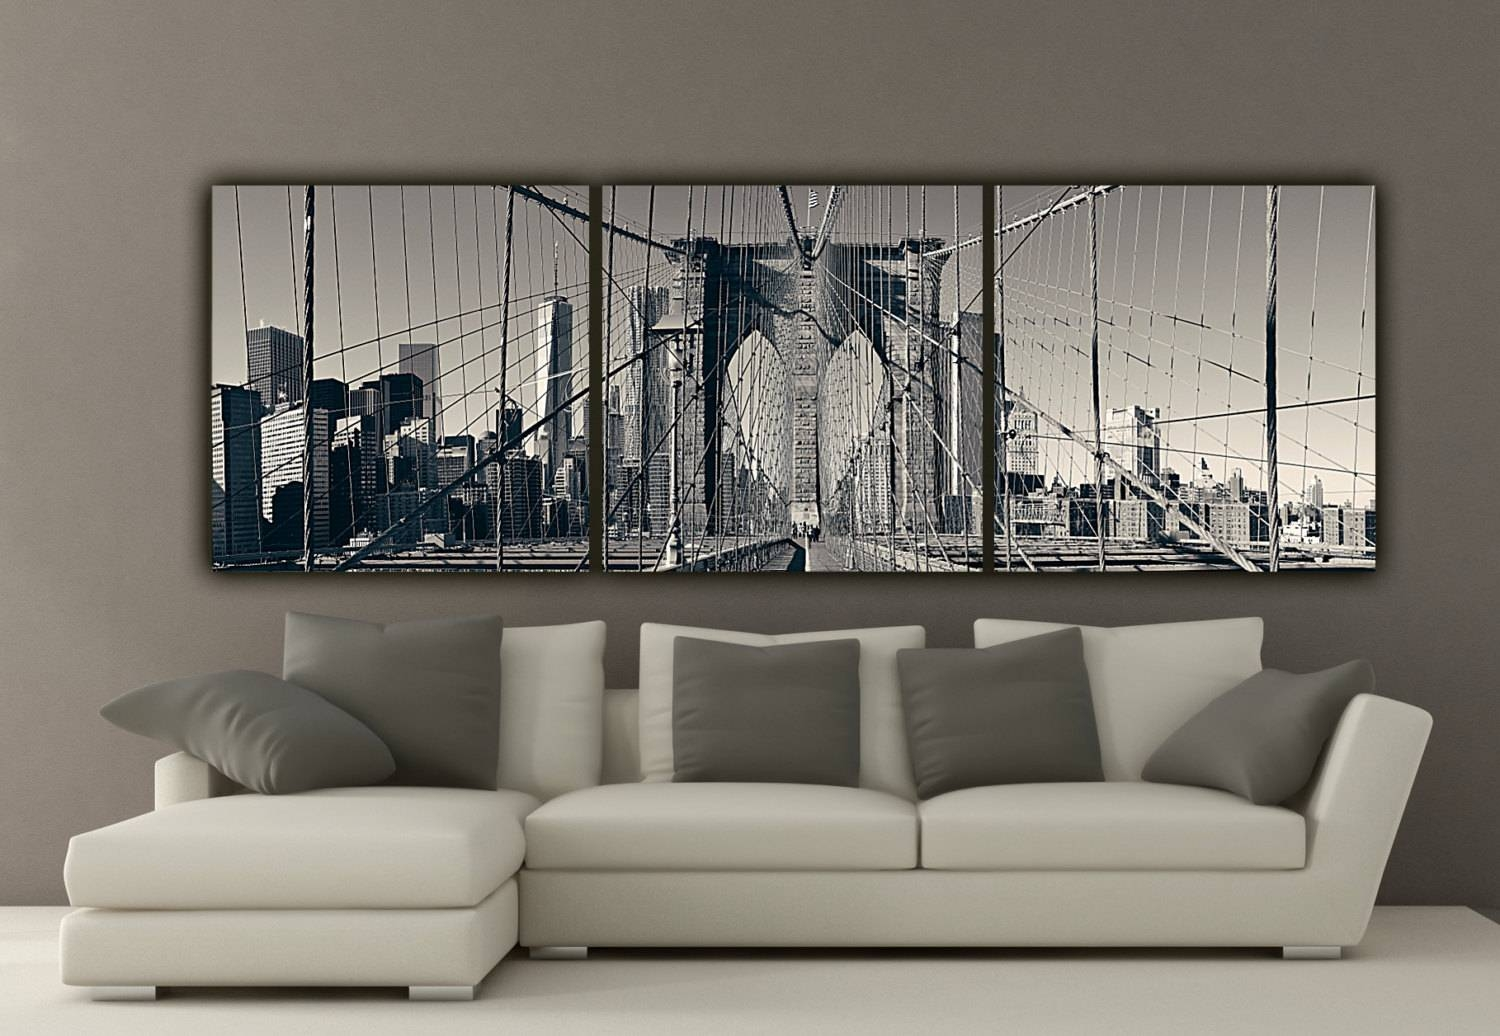 New York Brooklyn Bridge Canvas Wall Art Black And White New With Regard To Most Current Black And White Wall Art (View 11 of 16)